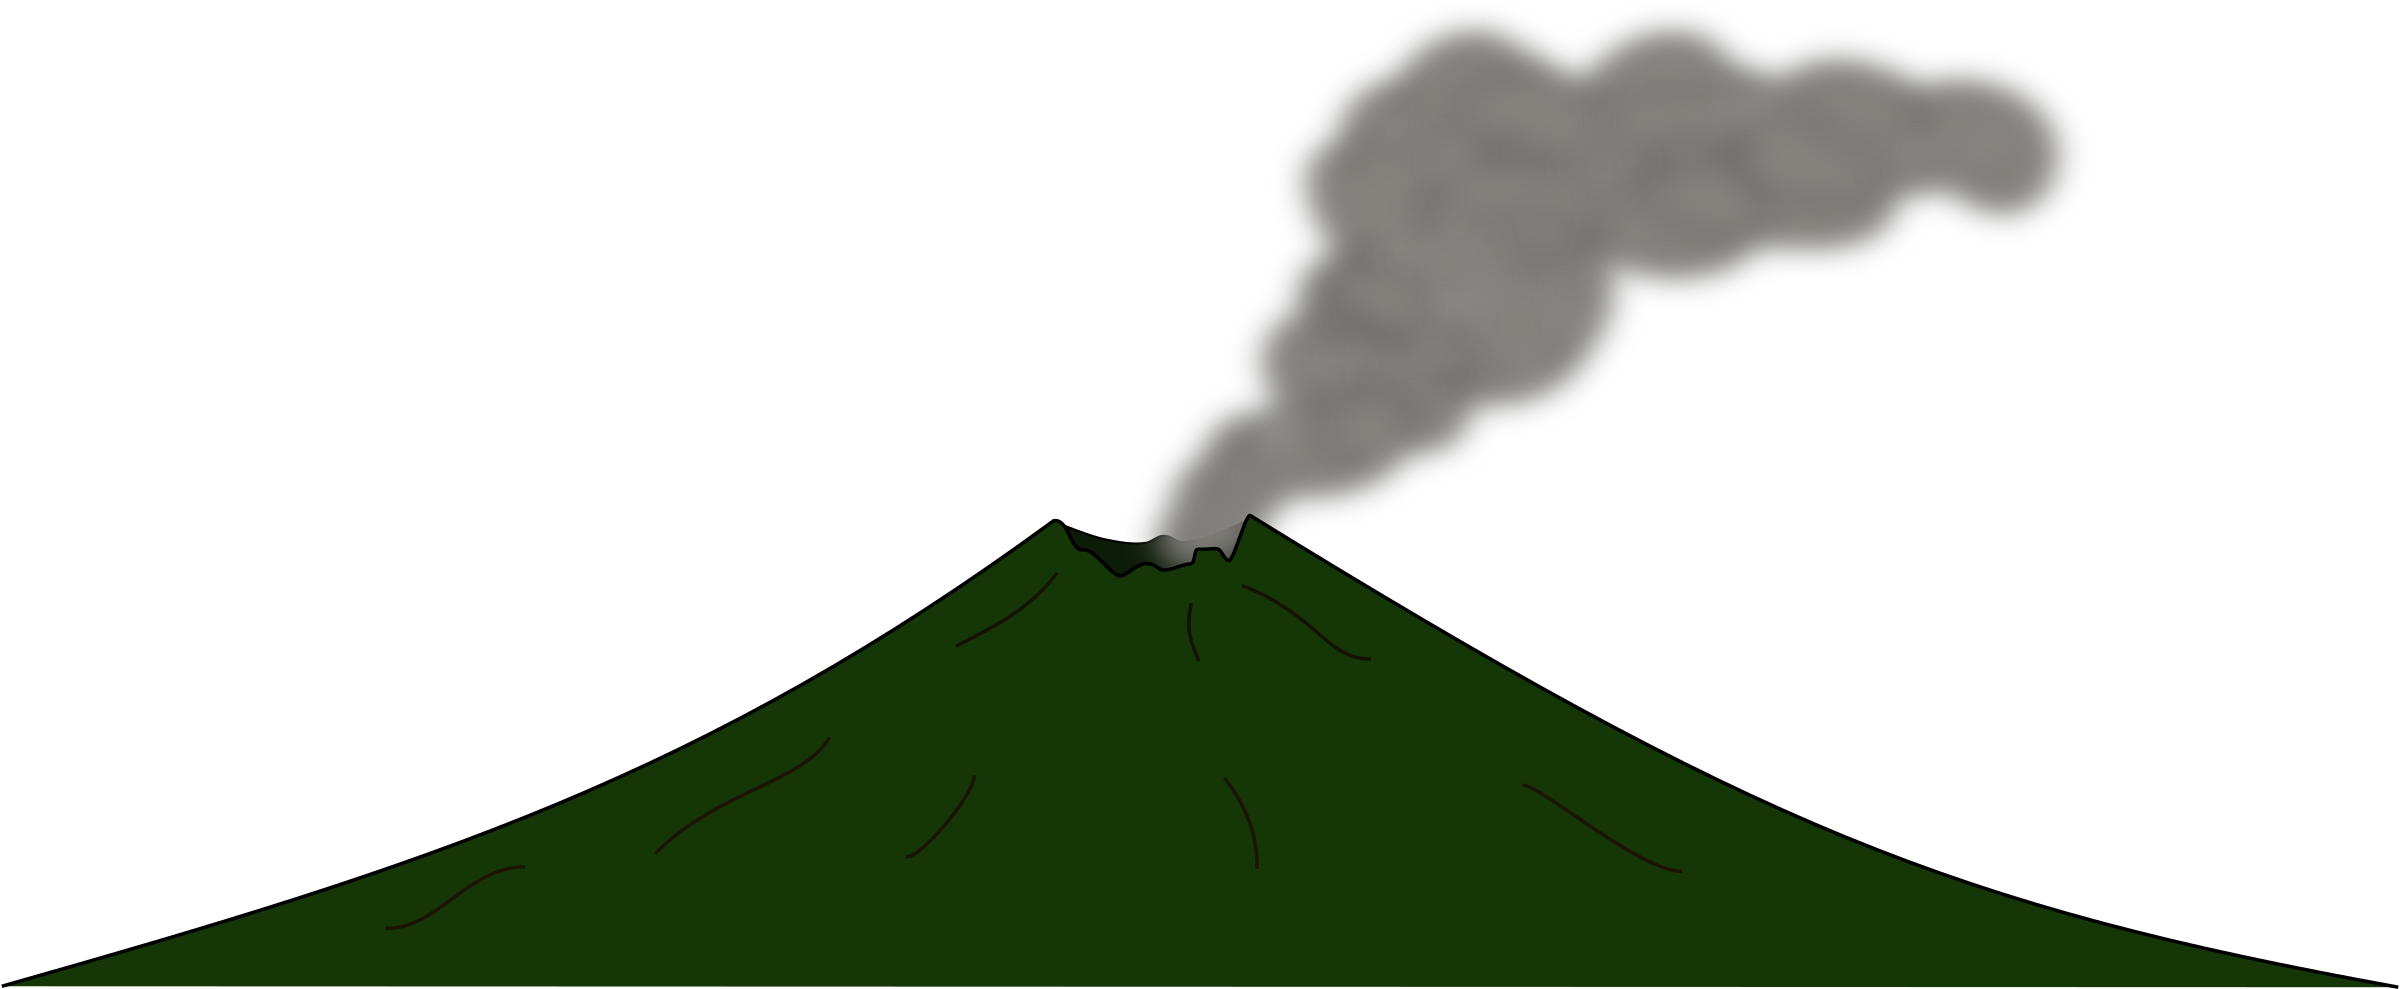 Transparent volcano pdf. Icons png free and